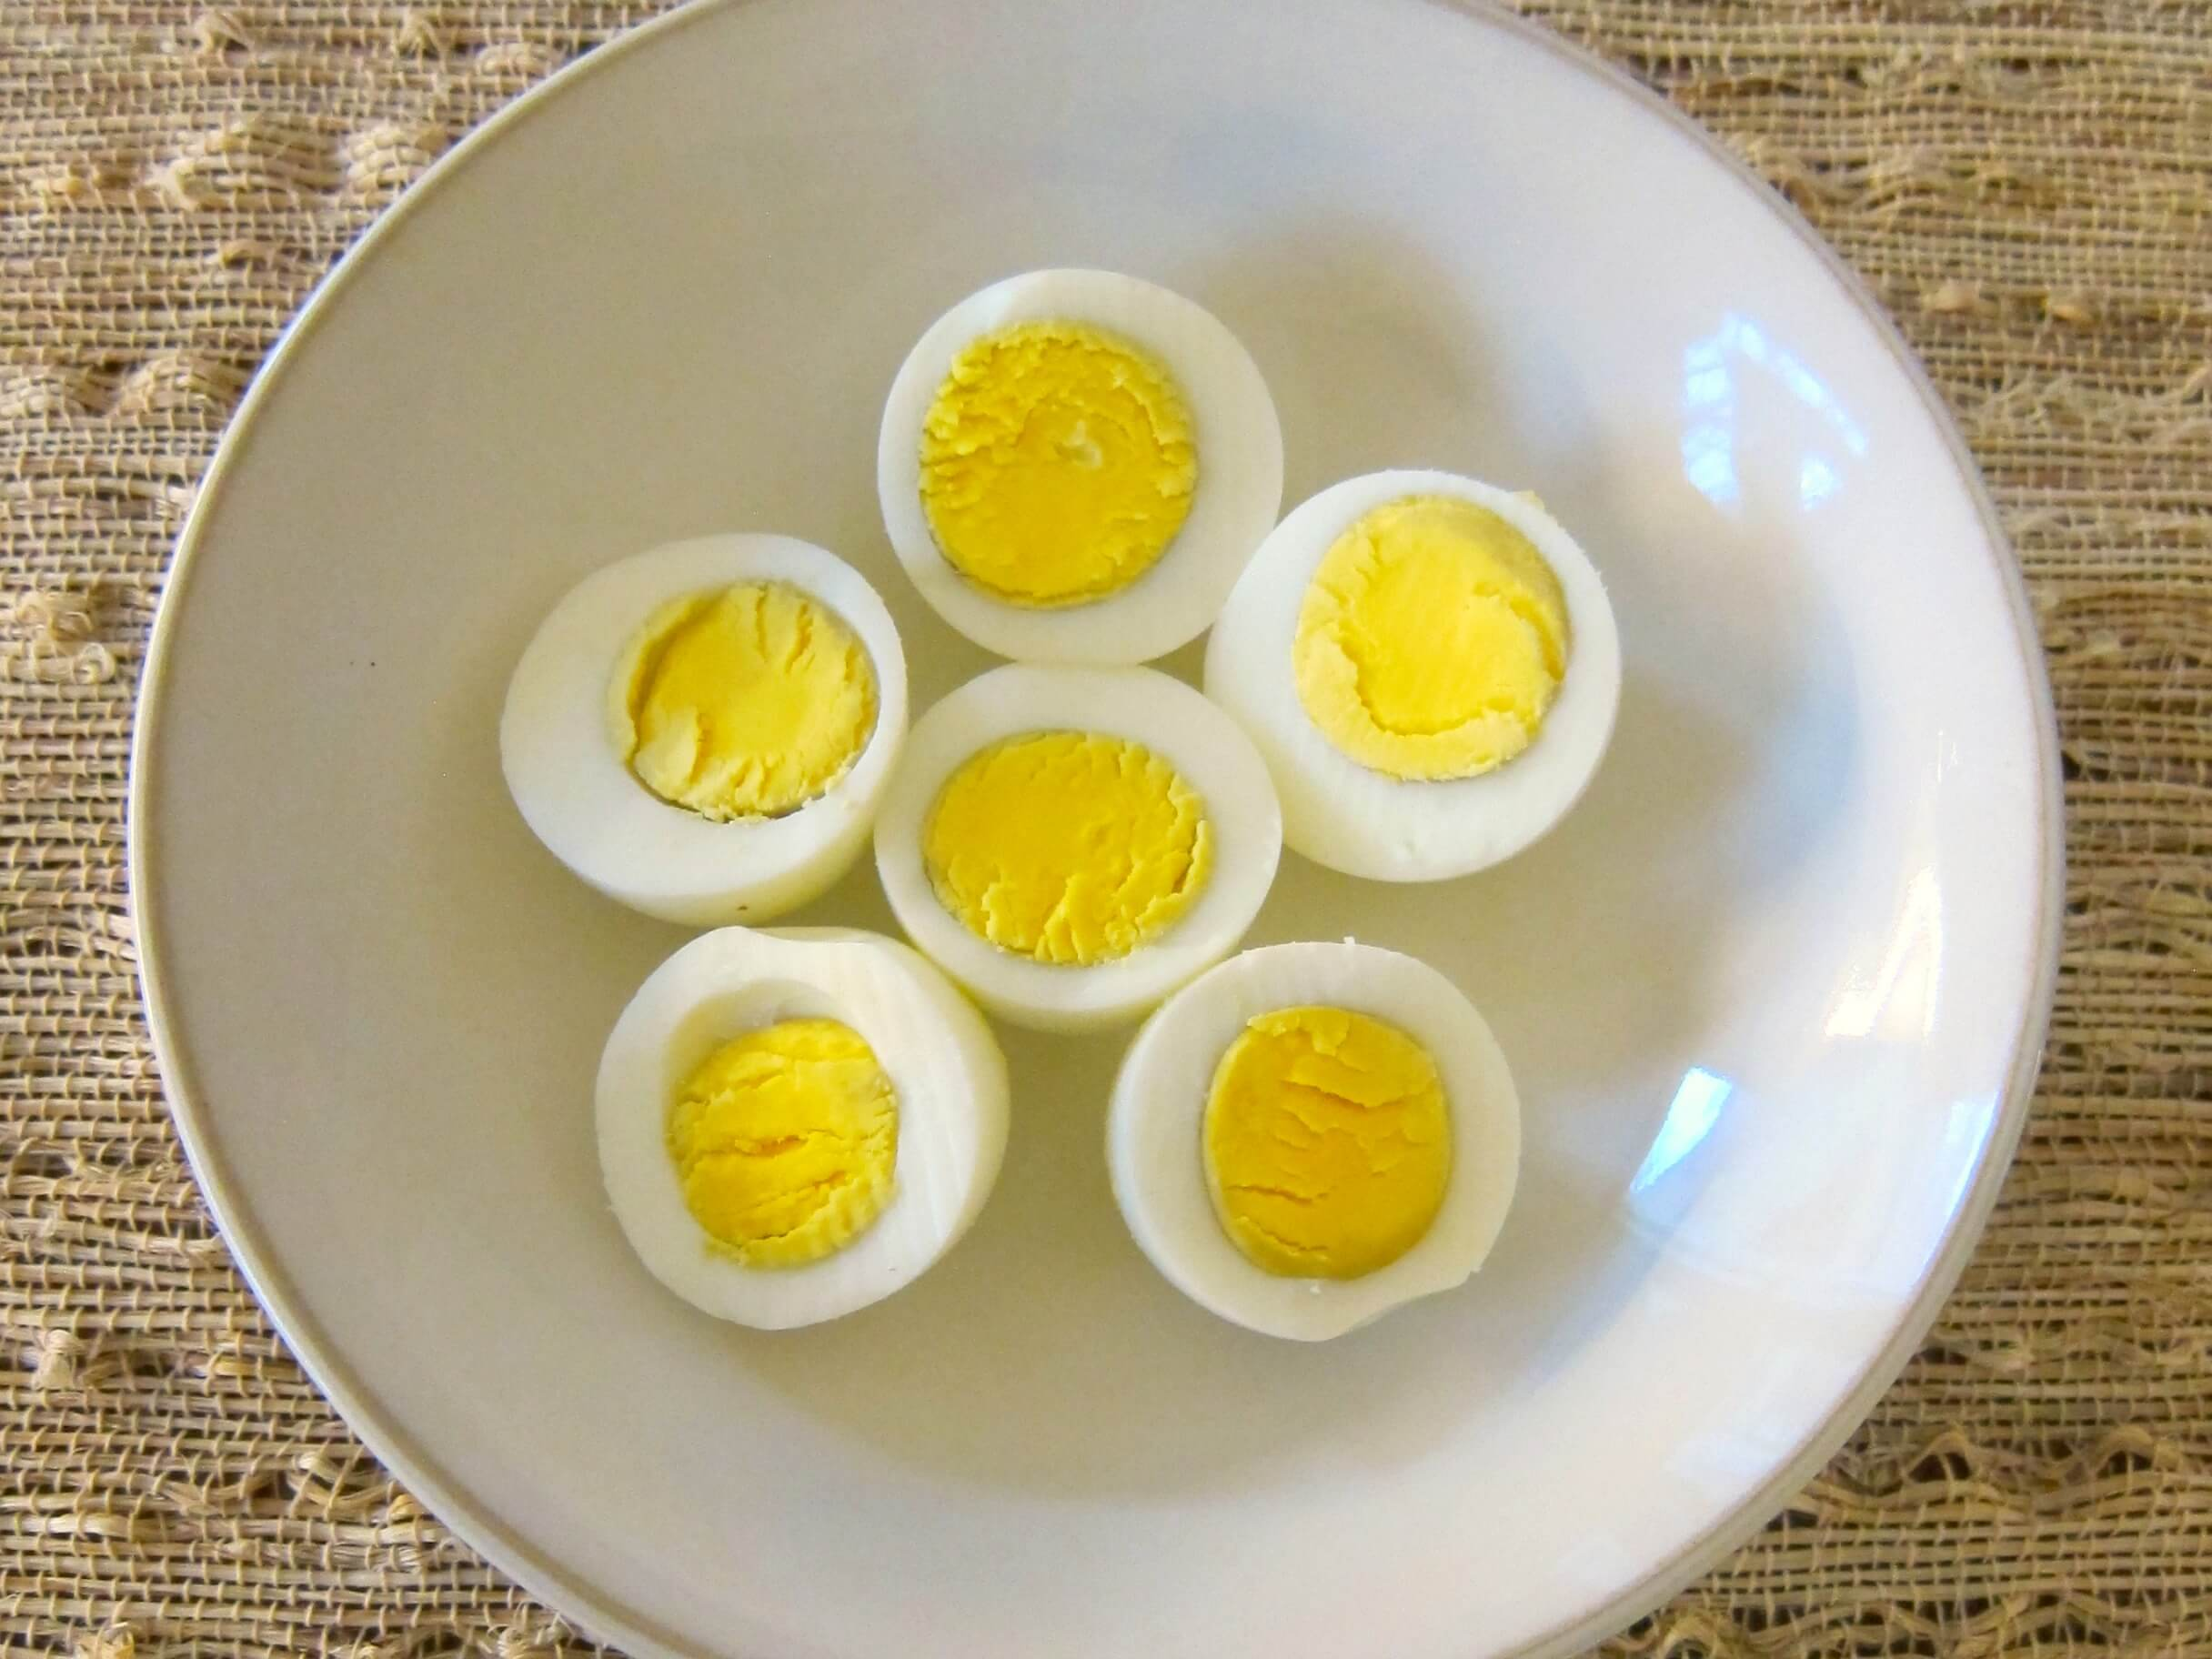 Three Instant Pot eggs cut into half in a white bowl, yellow side up